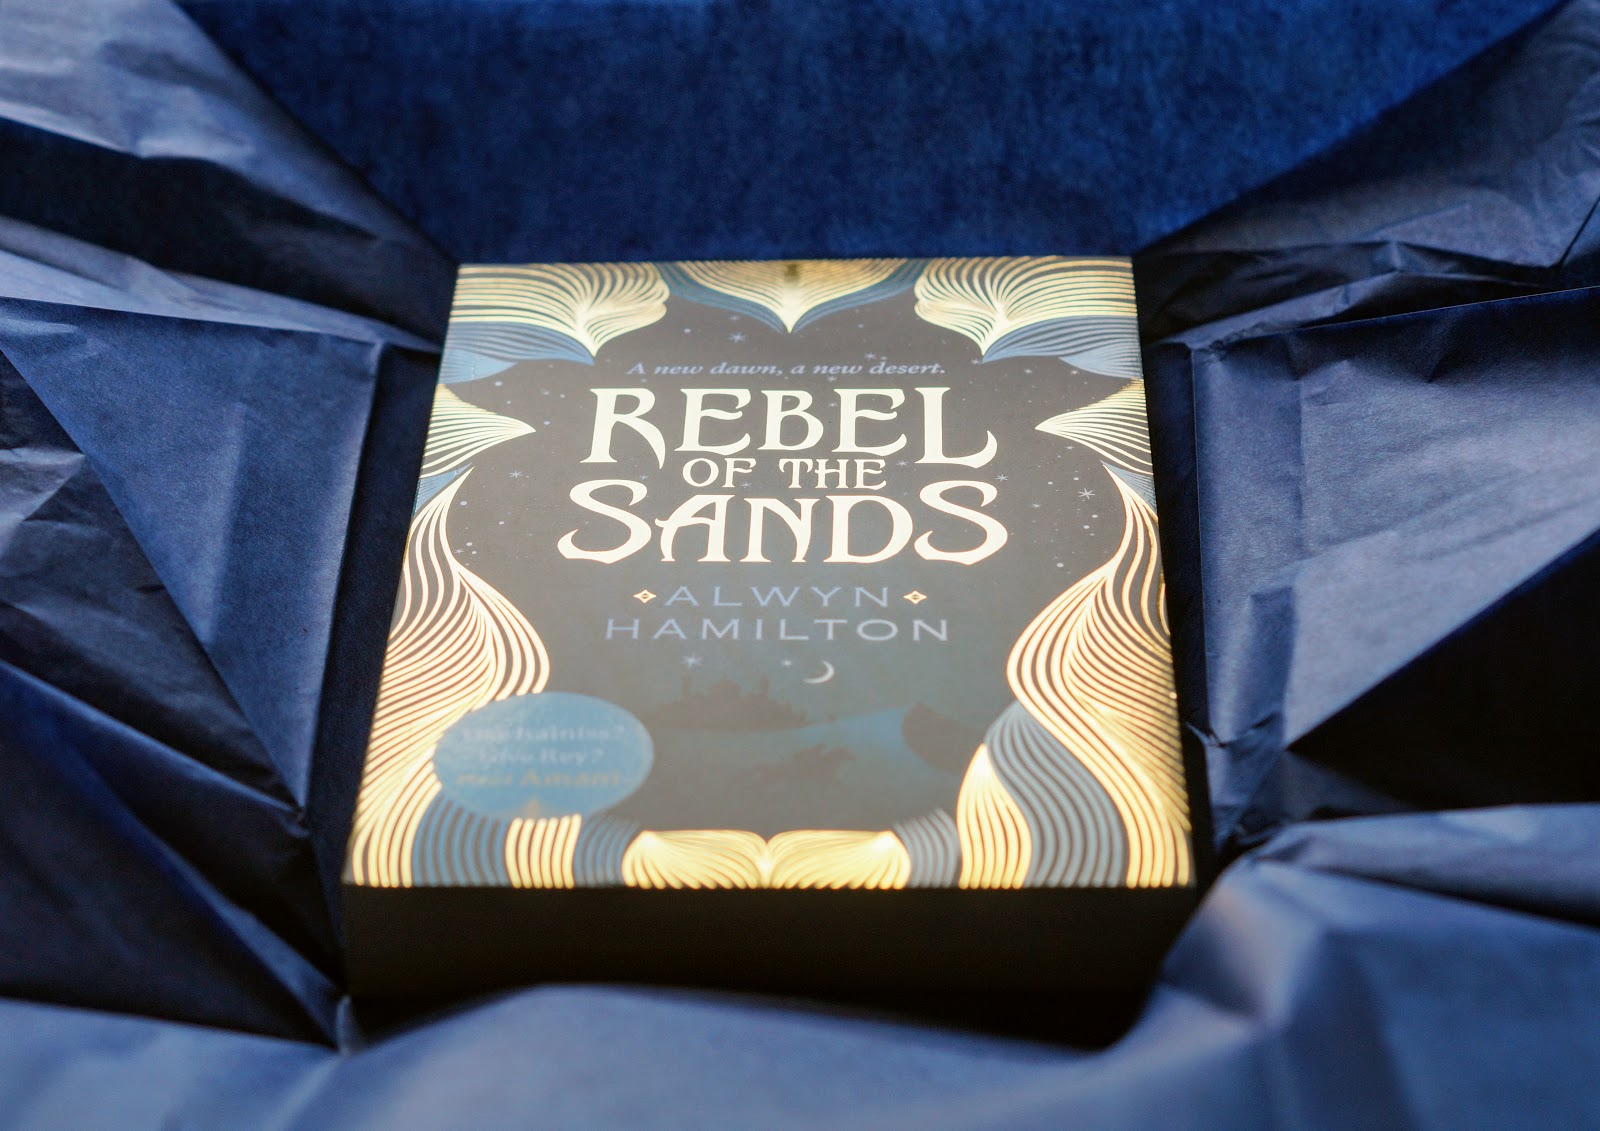 Rebel of the sands book unboxed